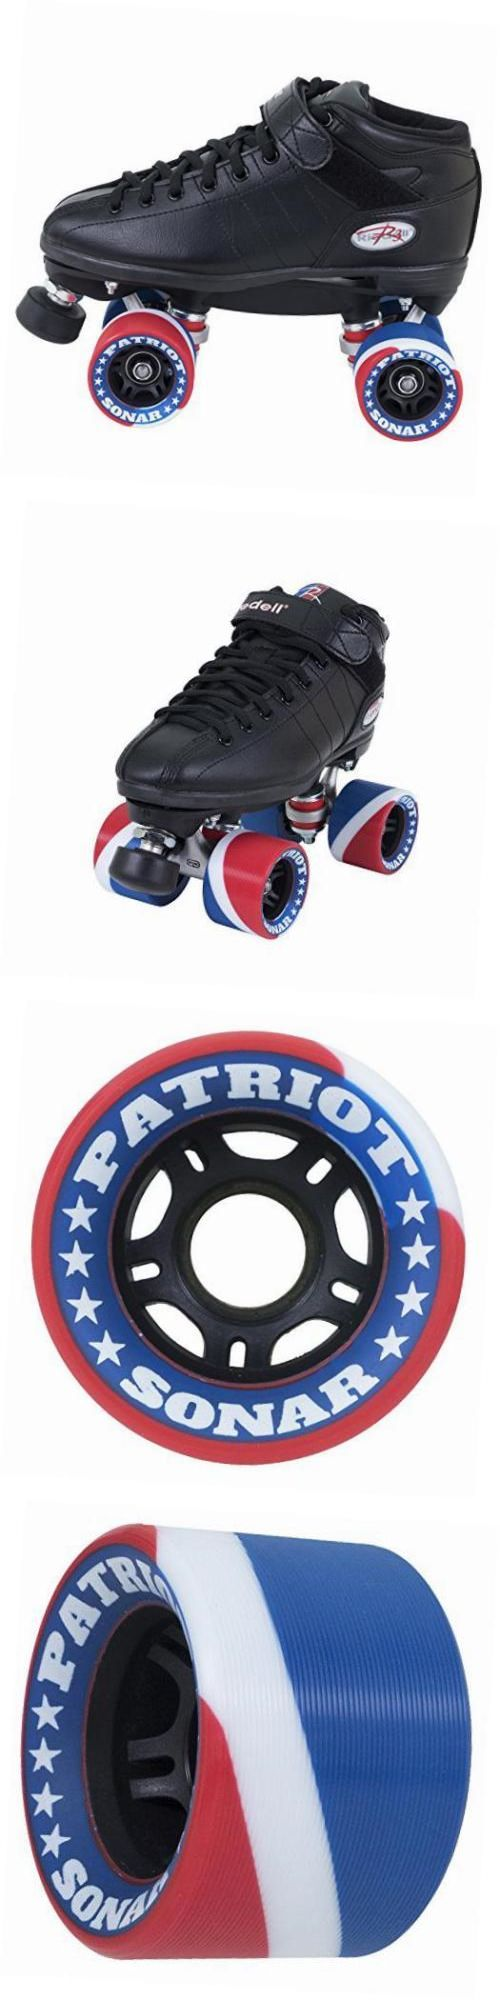 Men 71155: R3 Patriot Roller Skates -> BUY IT NOW ONLY: $195.19 on eBay!